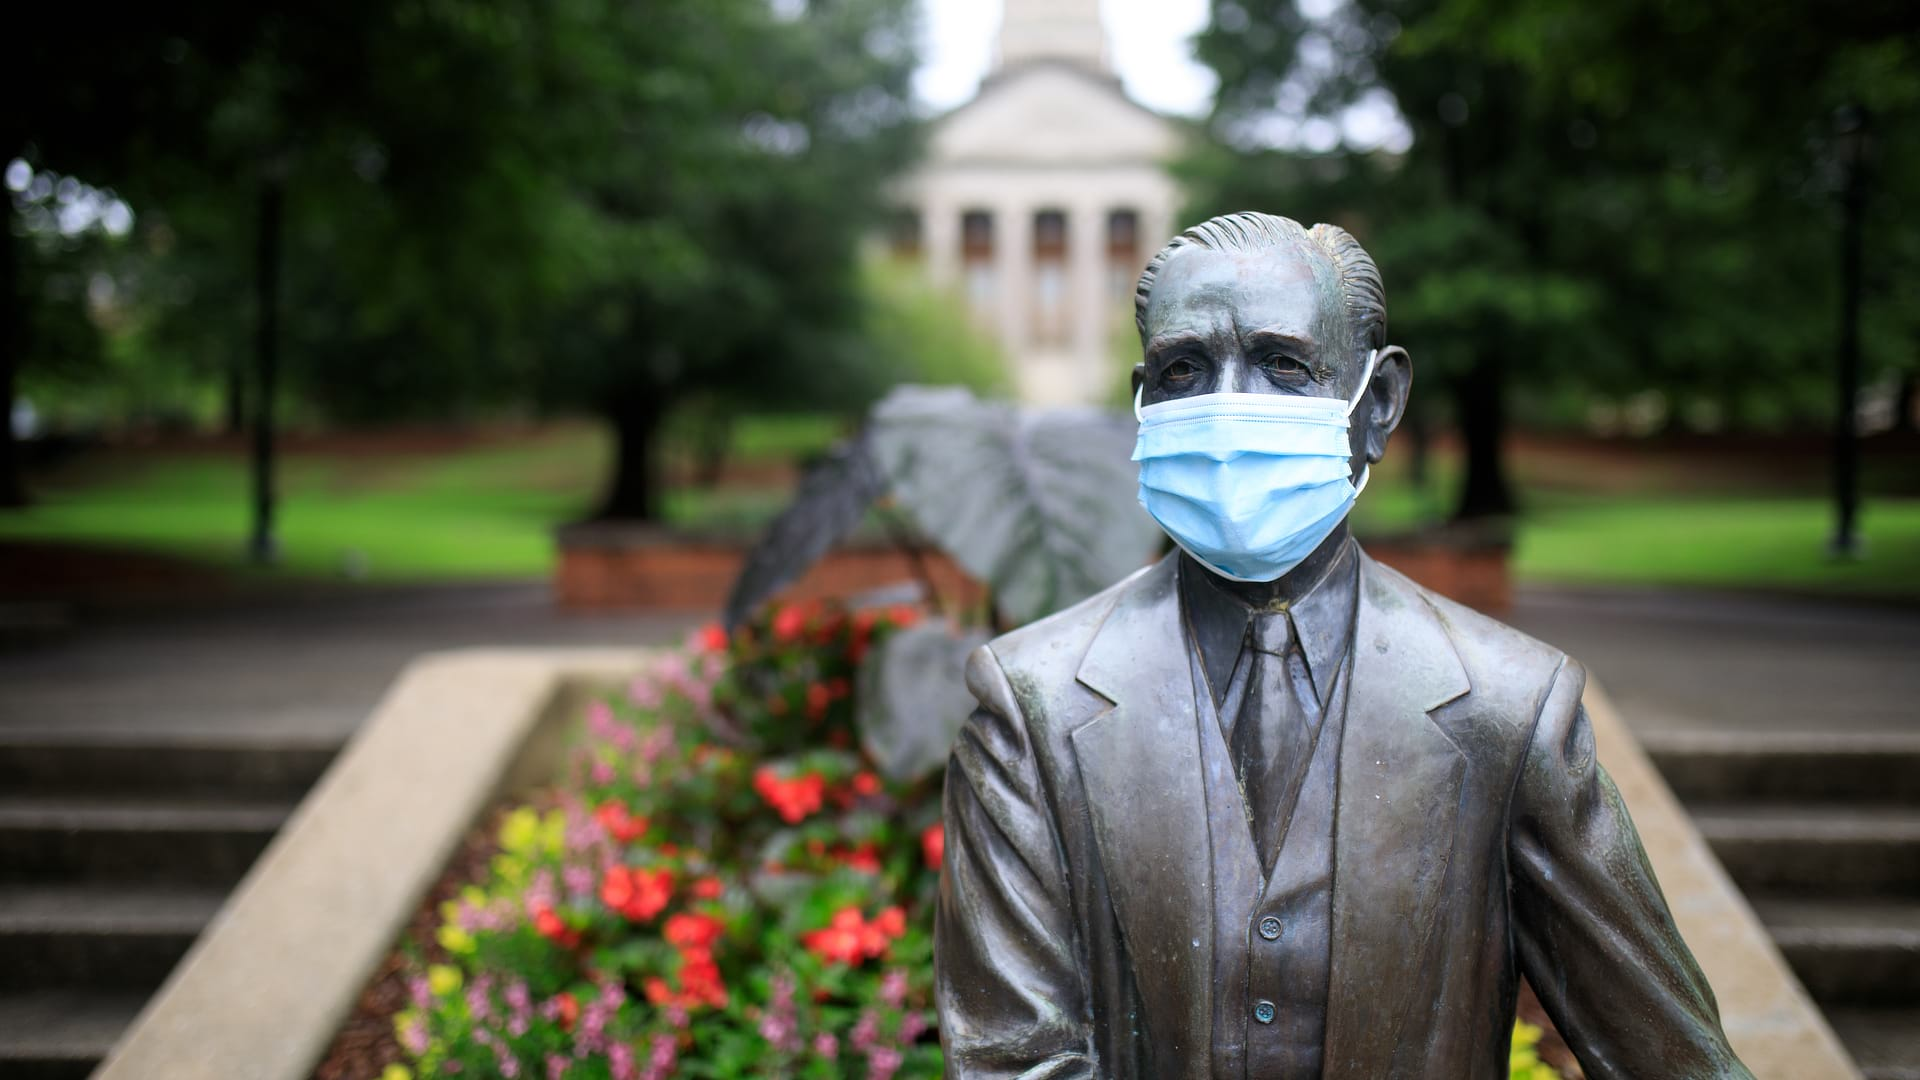 Mr. Beeson Statue wearing a mask